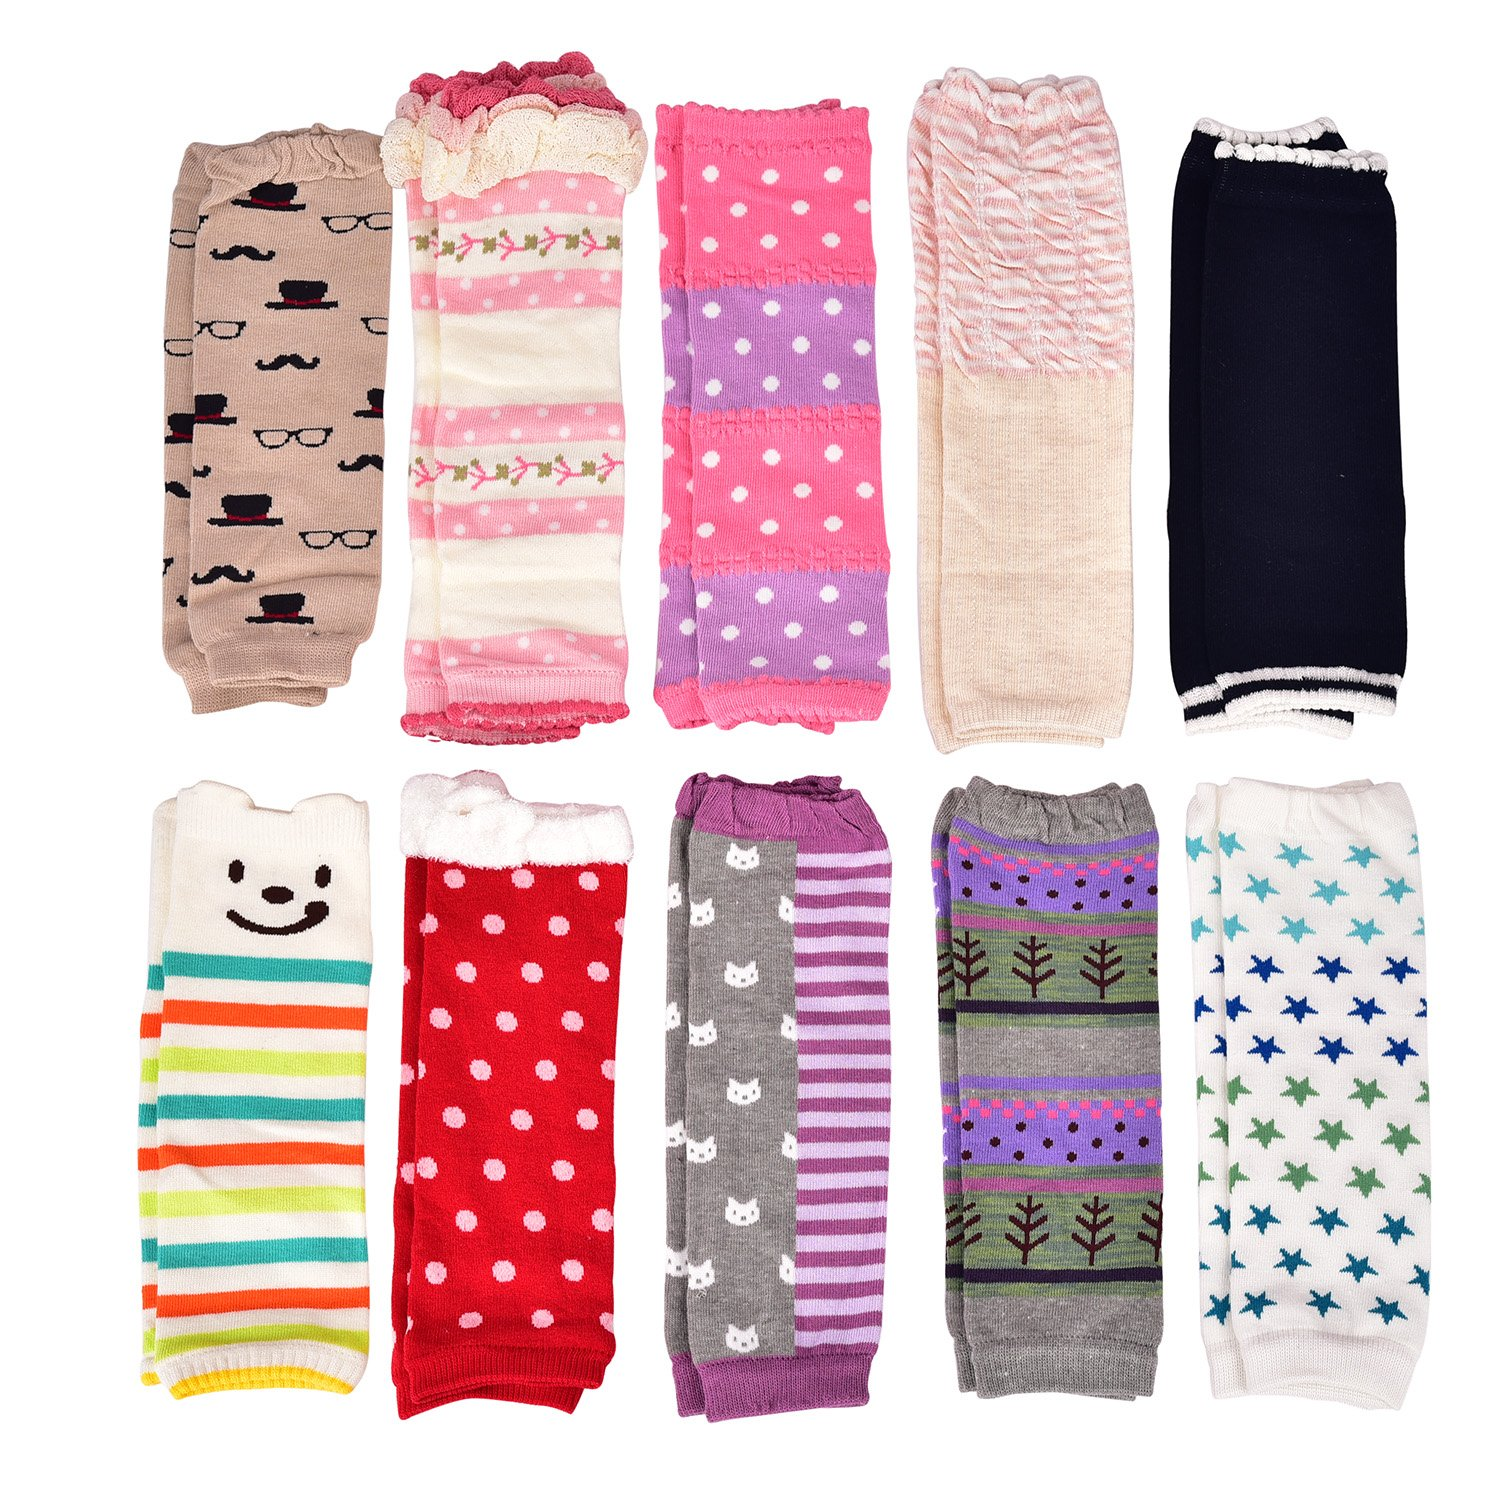 6 Pairs Toddler Girls Boys Leg Warmers, Baby Girl Boys Leggings Knee Pads Size 0-6 Months, 6-24 Months